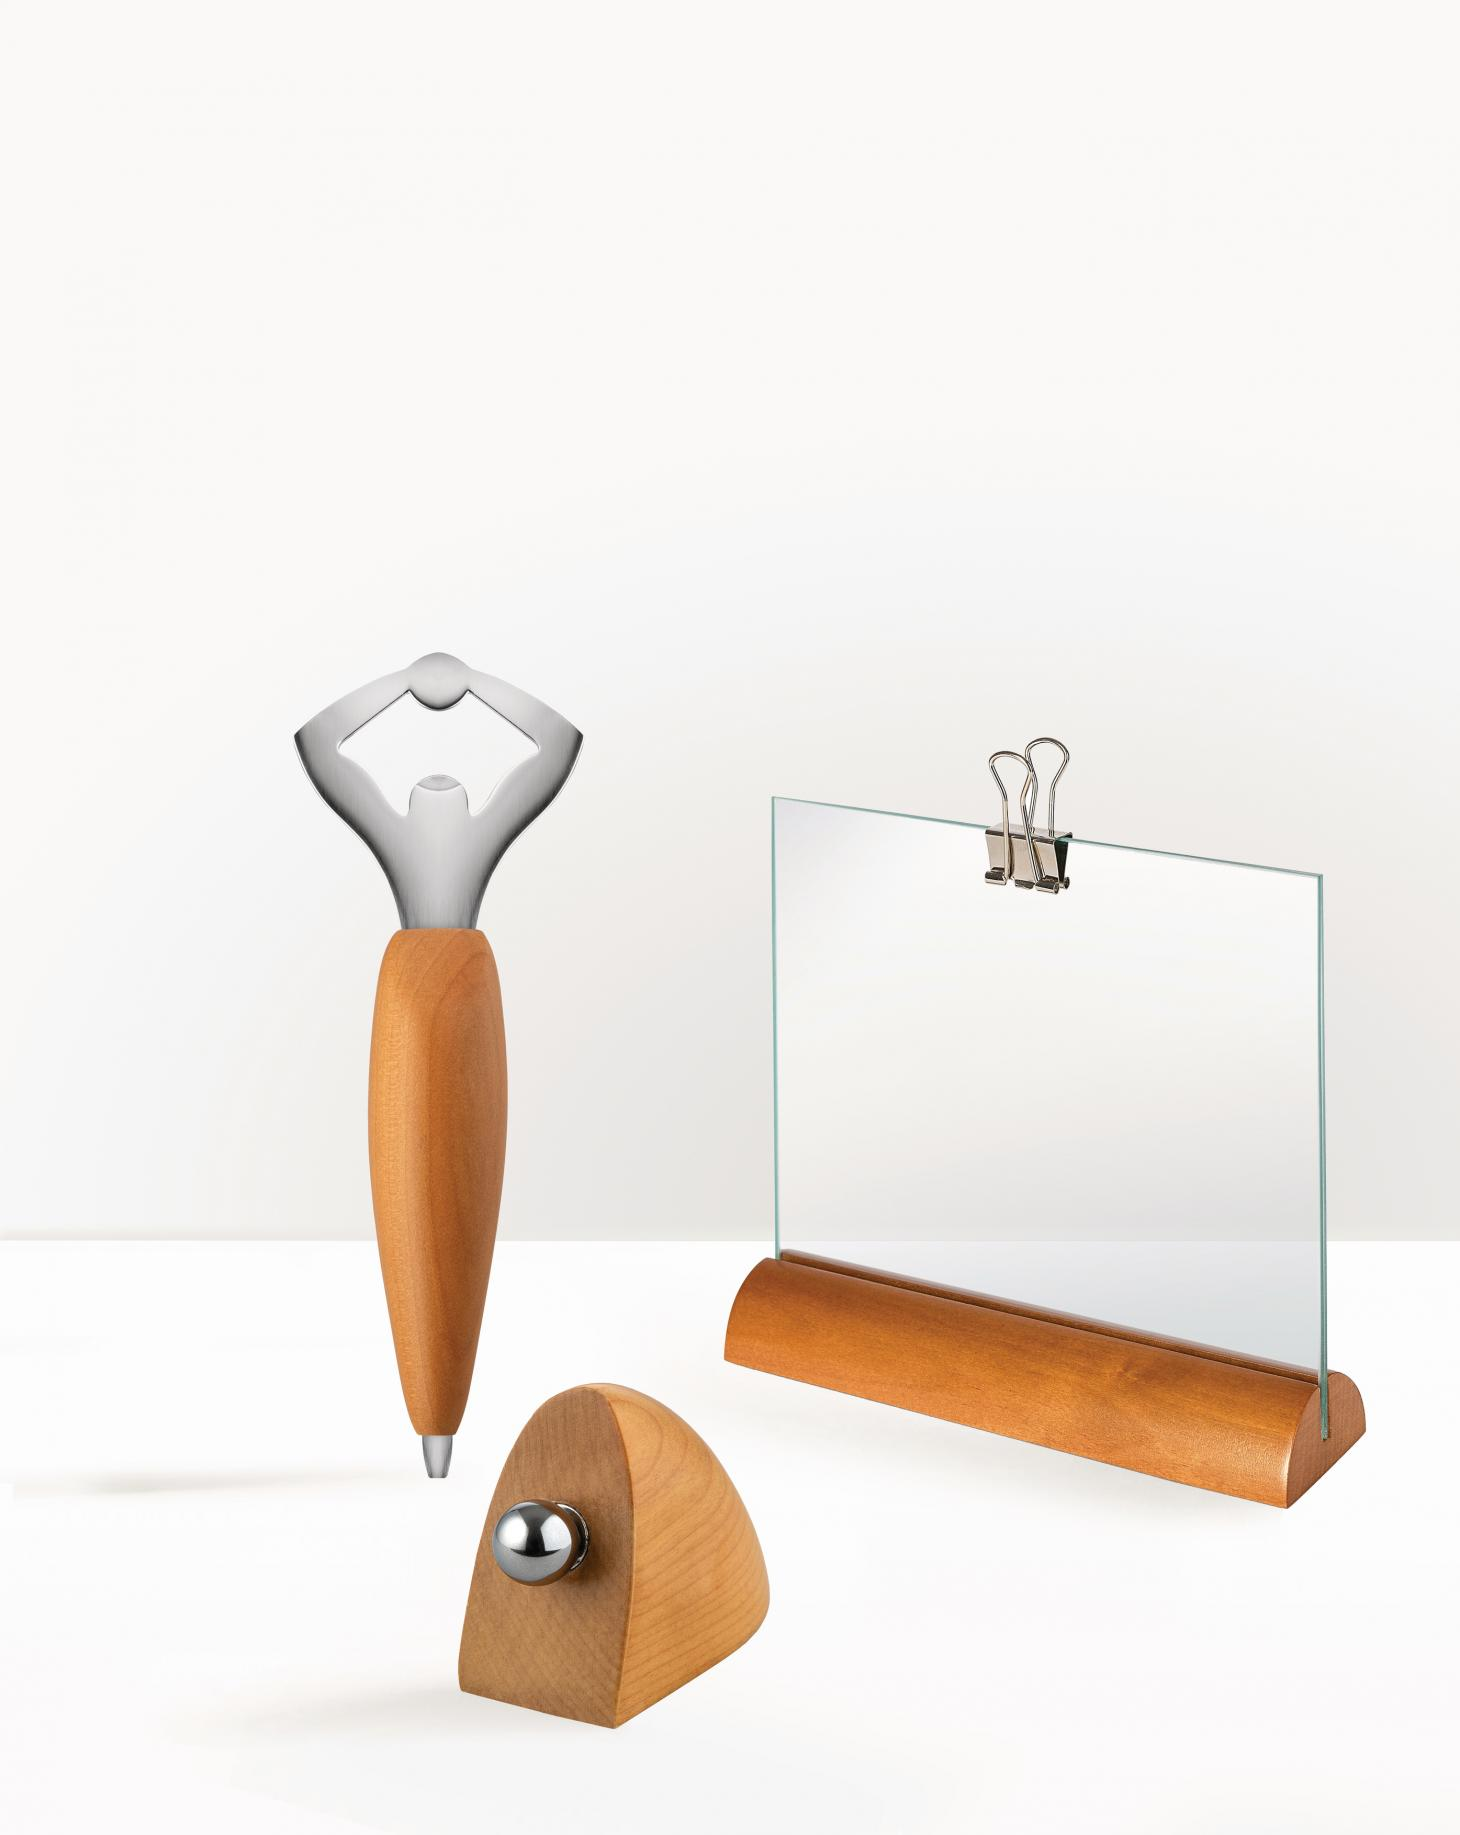 wooden objects designed by Andrea Branzi for Alessi